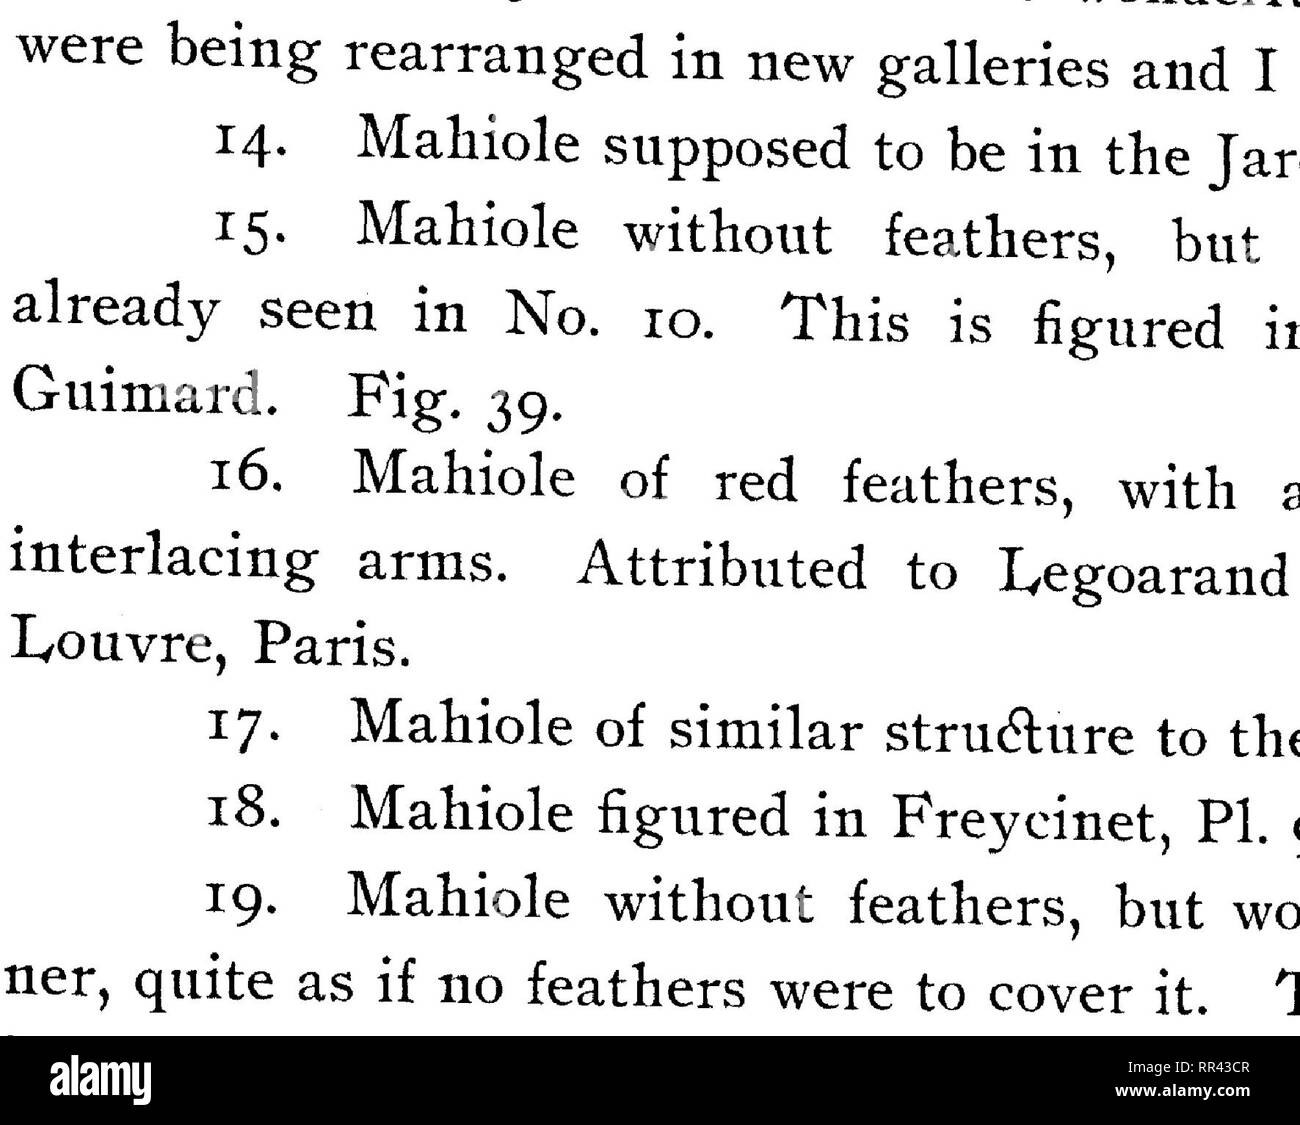 . Memoirs of the Bernice Pauahi Bishop Museum of Polynesian Ethnology and Natural History. Natural history; Ethnology. 4,6 BRIG HAM ON flAJVAflAN FEATHER JVORK. 25. Maliiole of ordiiiai;y form, l:)iit witli curious projecftious over the ears not seen in any other. No feathers left. Height, 1,3 iiiehes; depth, 8 inehes. From the Vancouver collecftioii now in the Britisli M^iseuni. Fig, 40, a. 26. Mahiolc of rather coarse wicker work, with detached crest supported l)y five round, phiited bars. The ear holes are angular instead of, as usual, nnmdcd. 'No feathers. Height, icS inches; depth, 12 inc - Stock Image